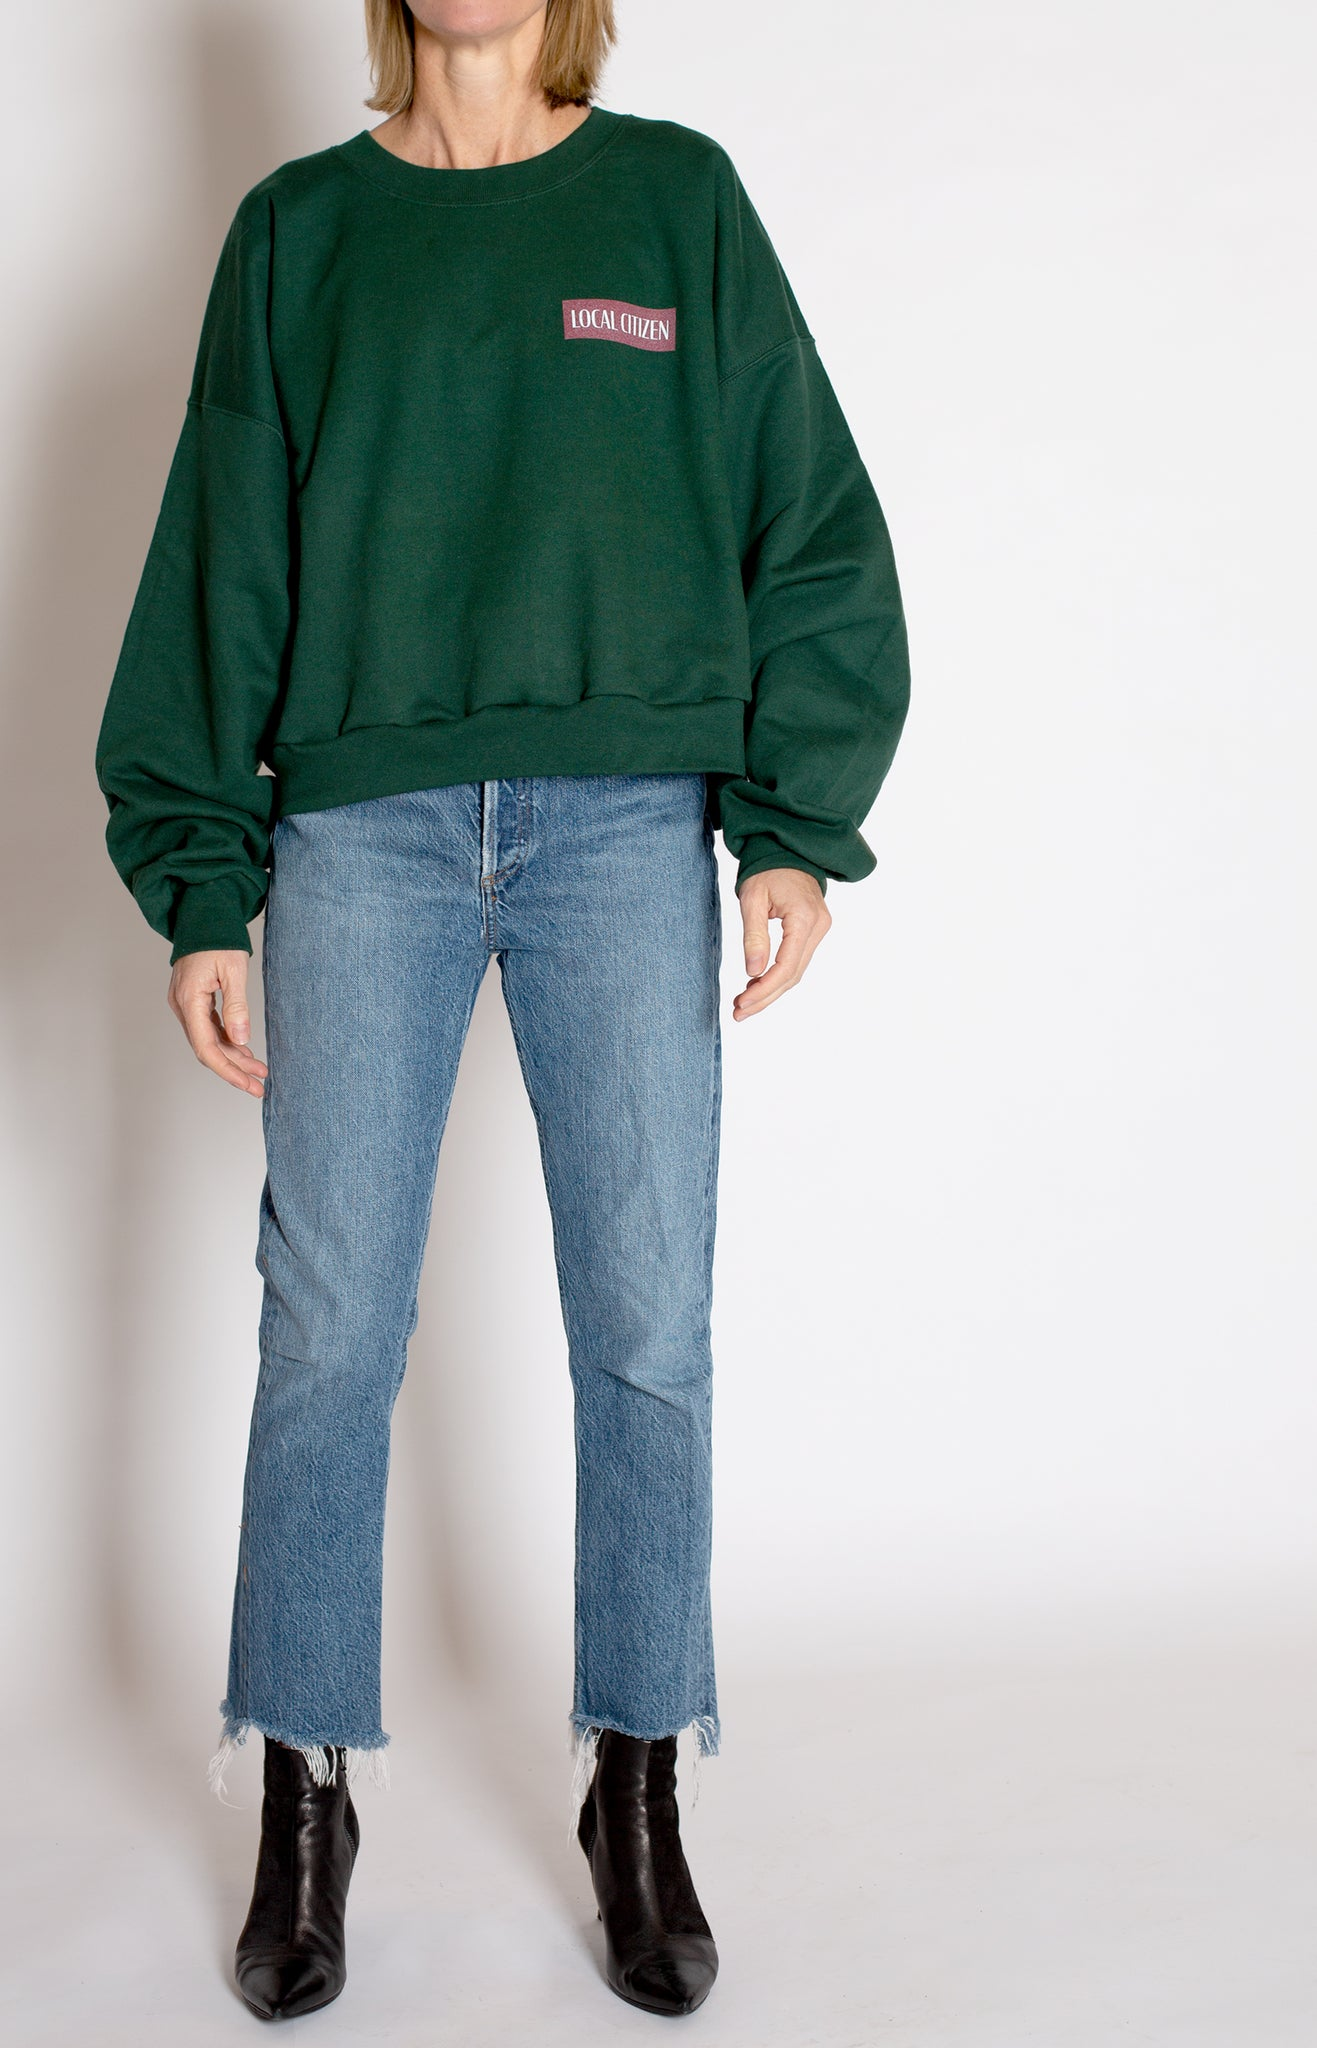 Cropped Sport Crew in Collegiate Green